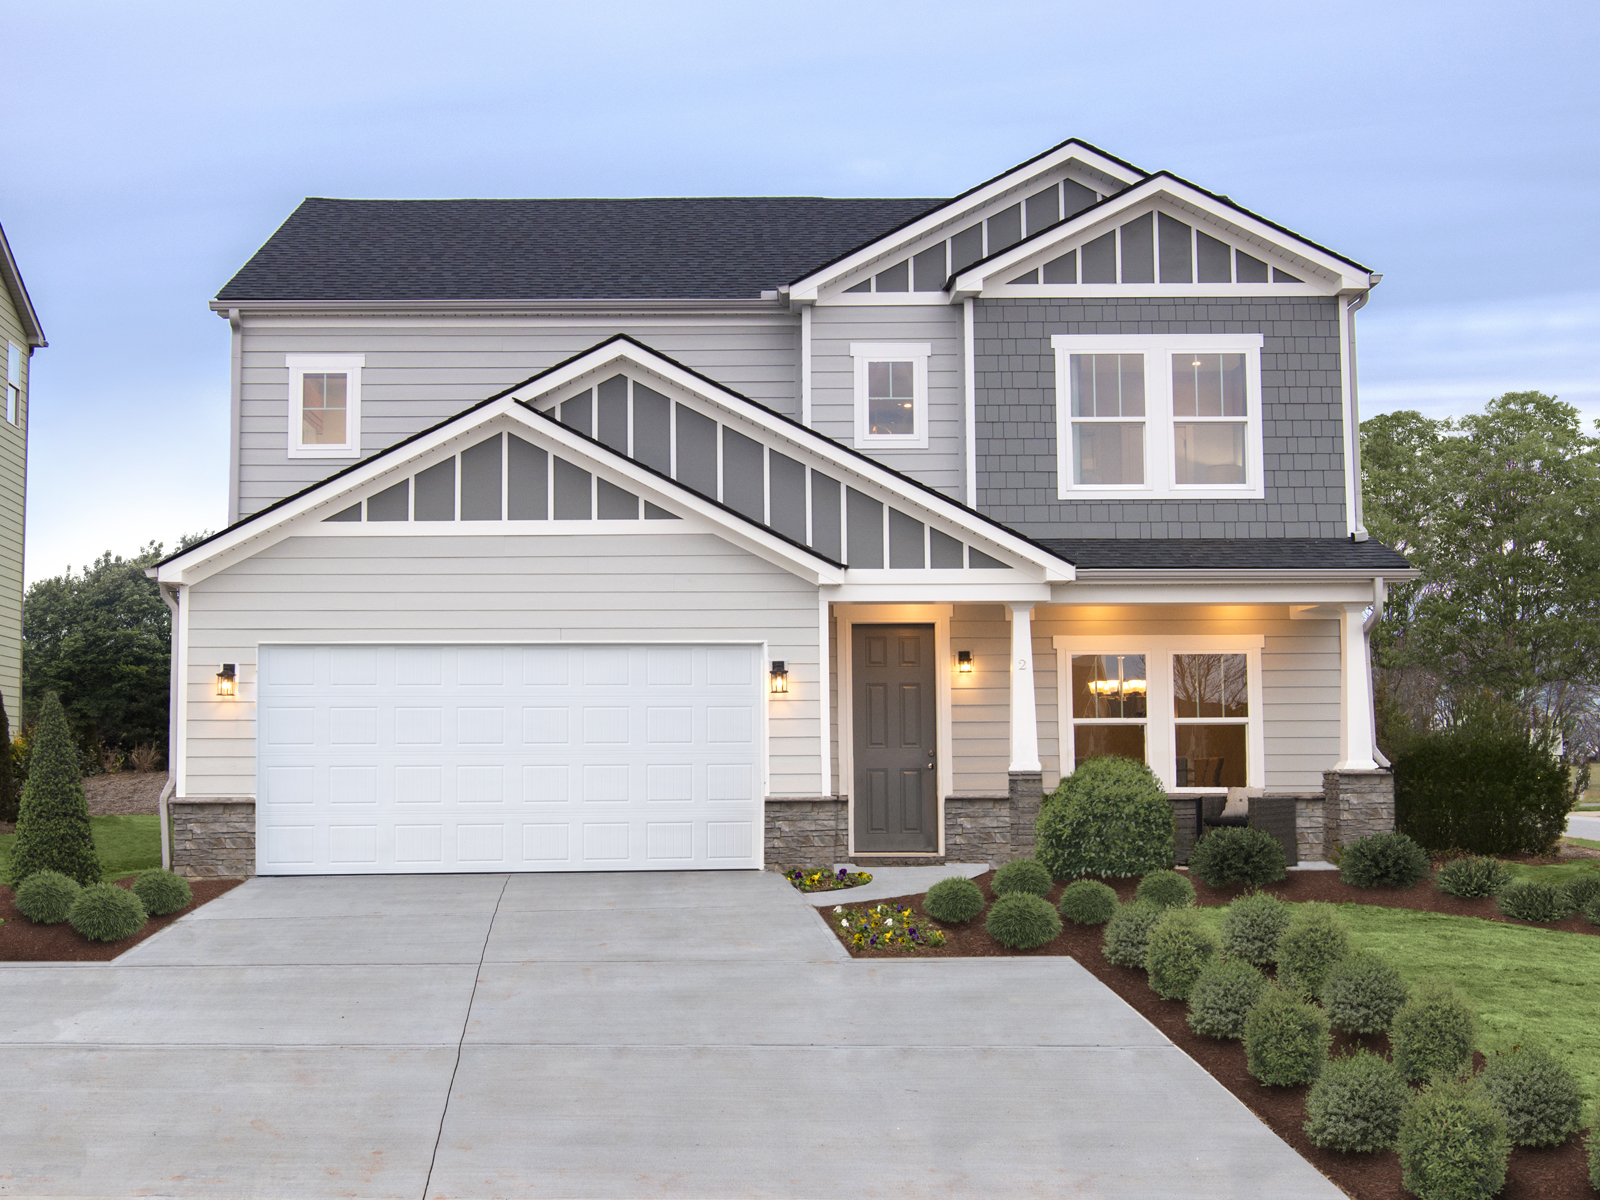 Marvelous Bridgewater By Meritage Homes New Homes For Sale In Download Free Architecture Designs Embacsunscenecom